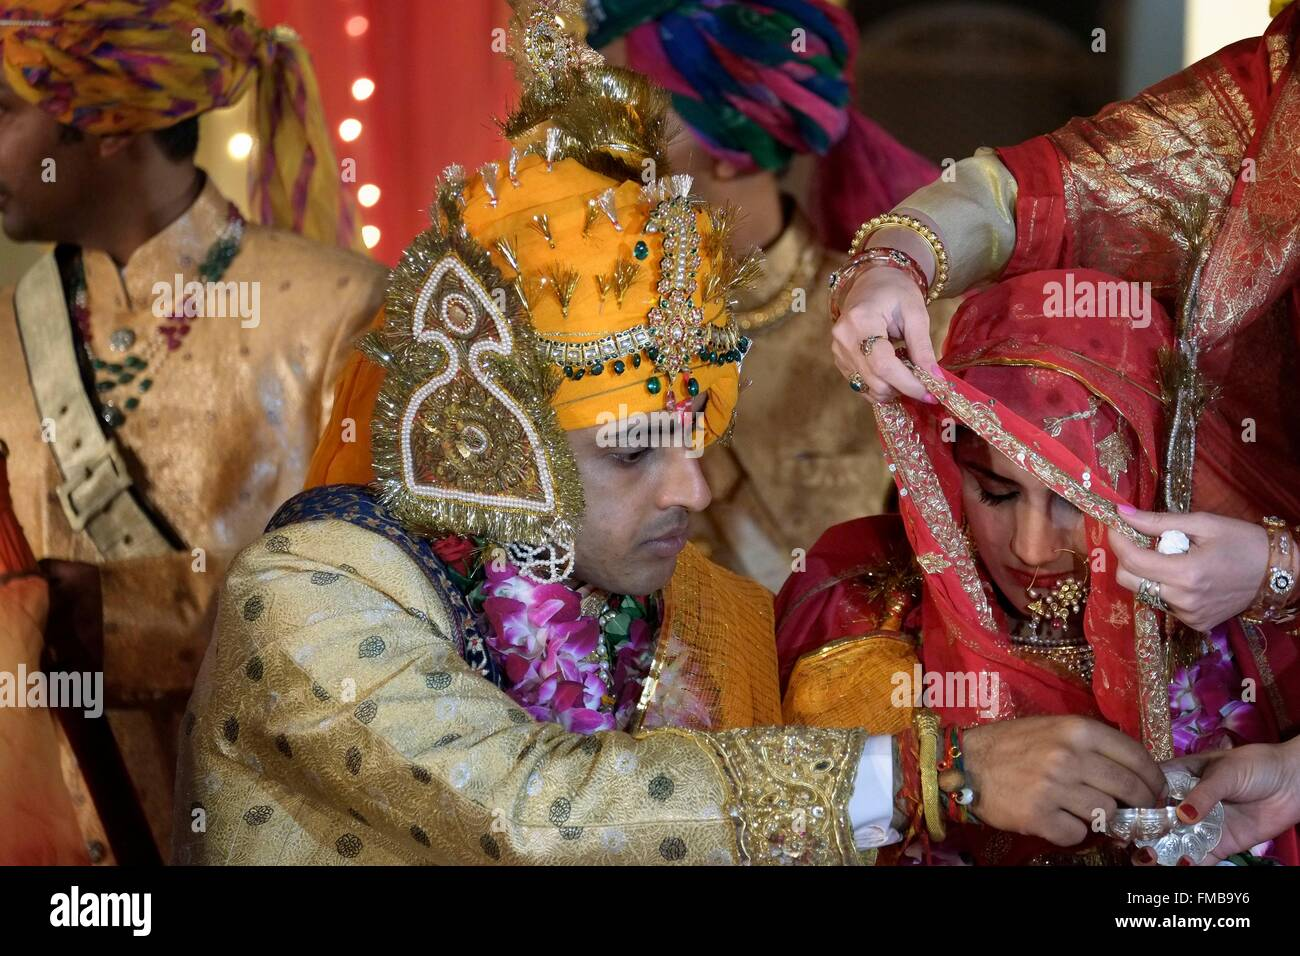 India Rajasthan State Jodhpur A Royal Rajasthani Wedding Between Param Vijay Et Kamakshi